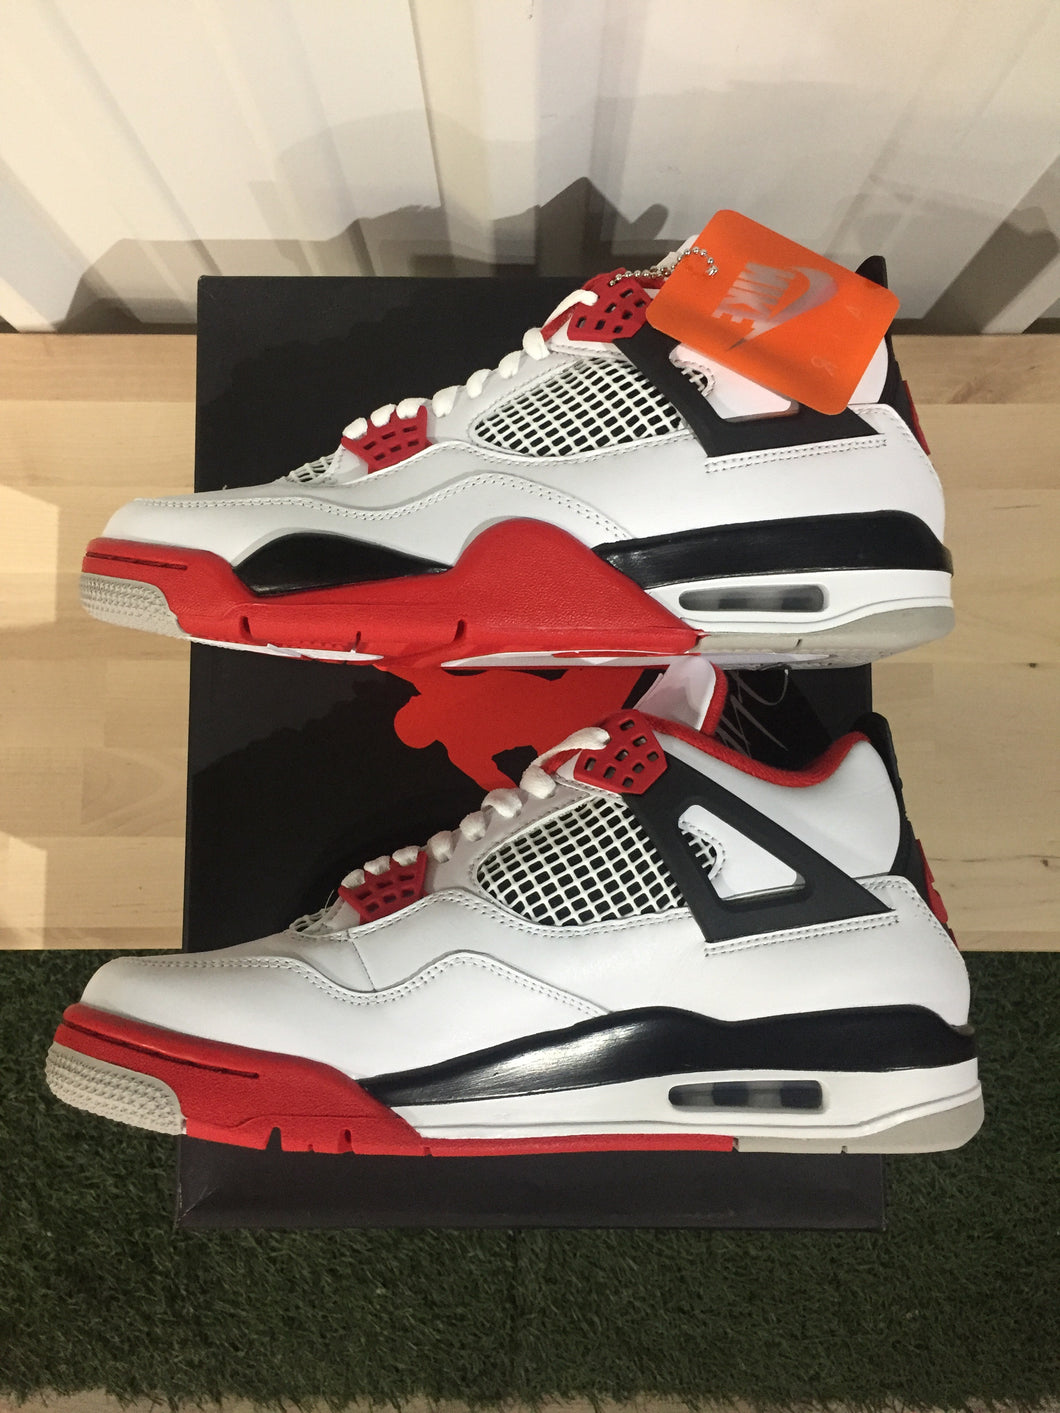 Jordan 4 Retro Fire Red 2020